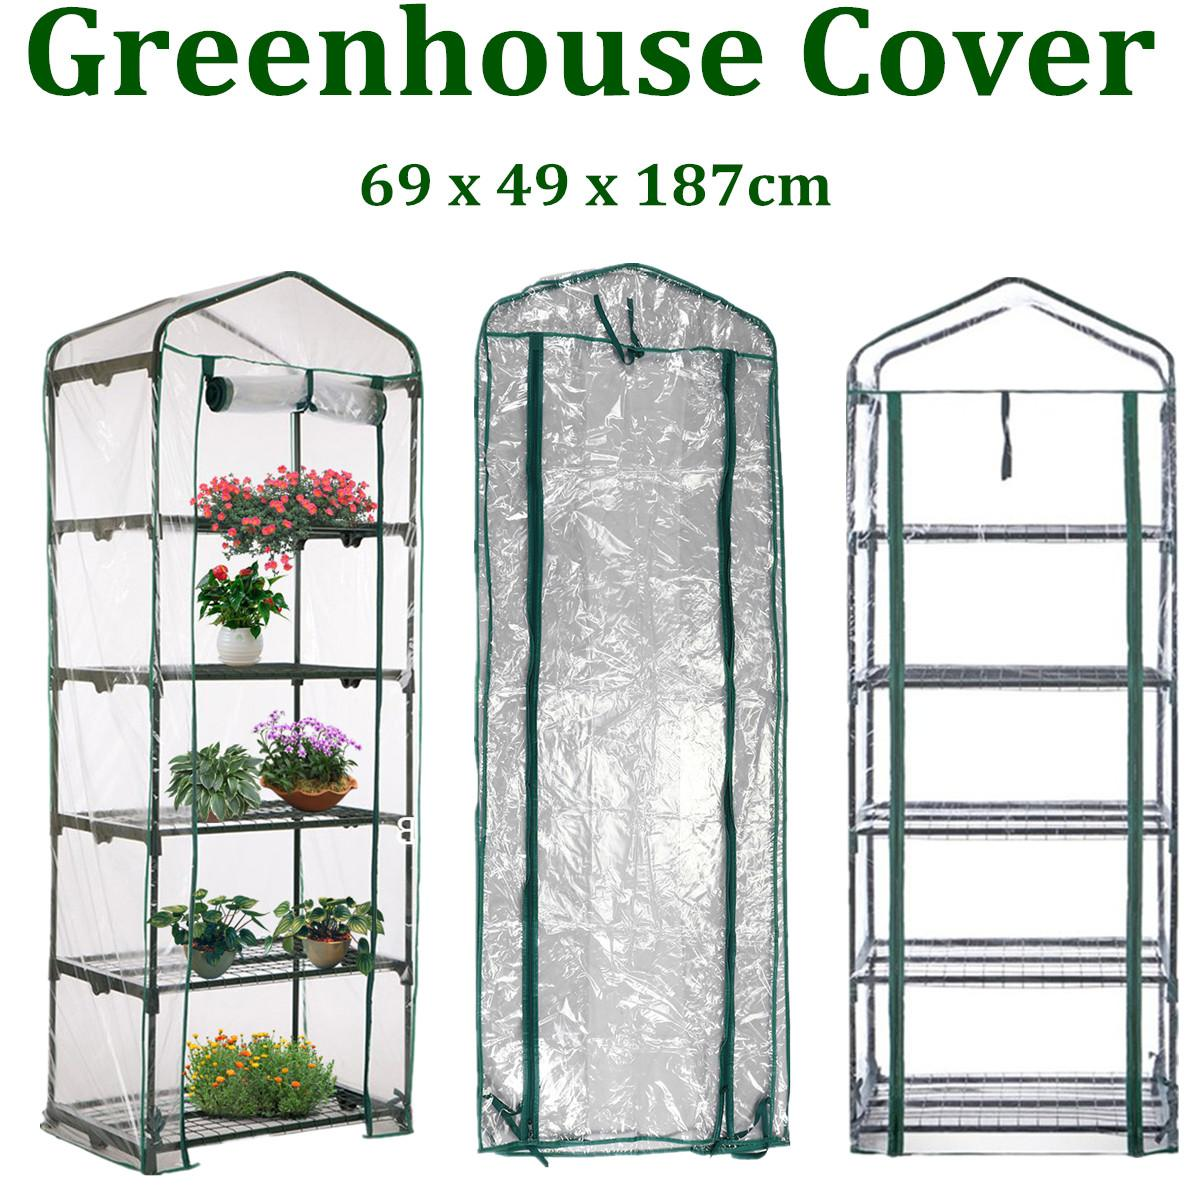 Garden Buildings Garden Greenhouses Reasonable Pvc Cover Apex-roof 5-tier Garden Greenhouse Hot Plant House Shelf Shed Clear Keep Warm Good Breathability 69x49x187cm Removable Terrific Value